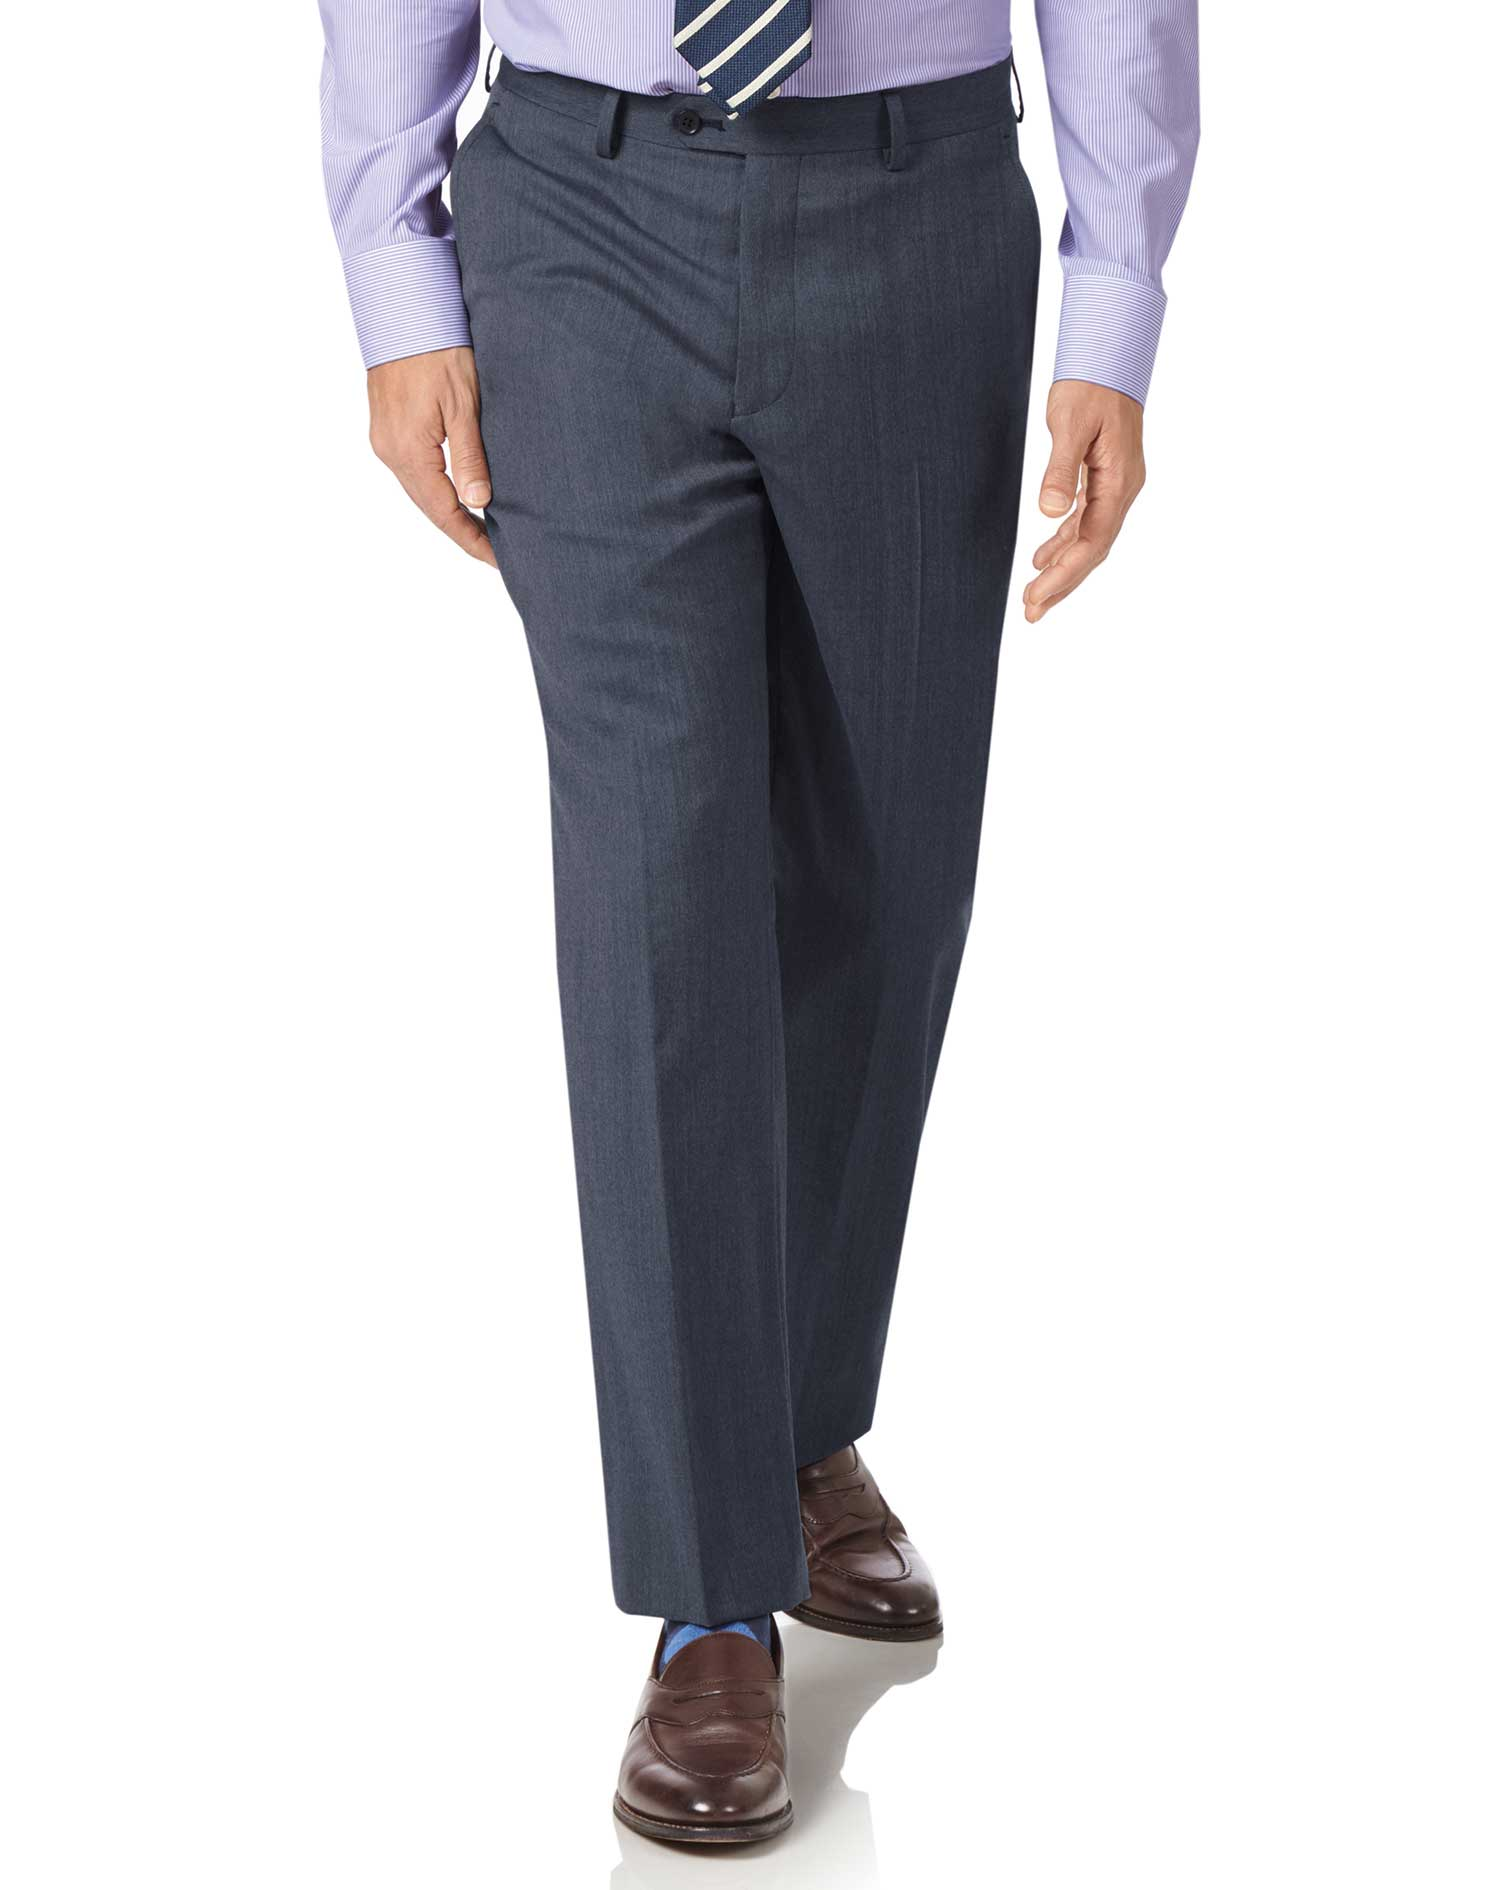 Light Blue Classic Fit Twill Business Suit Trousers Size W42 L34 by Charles Tyrwhitt